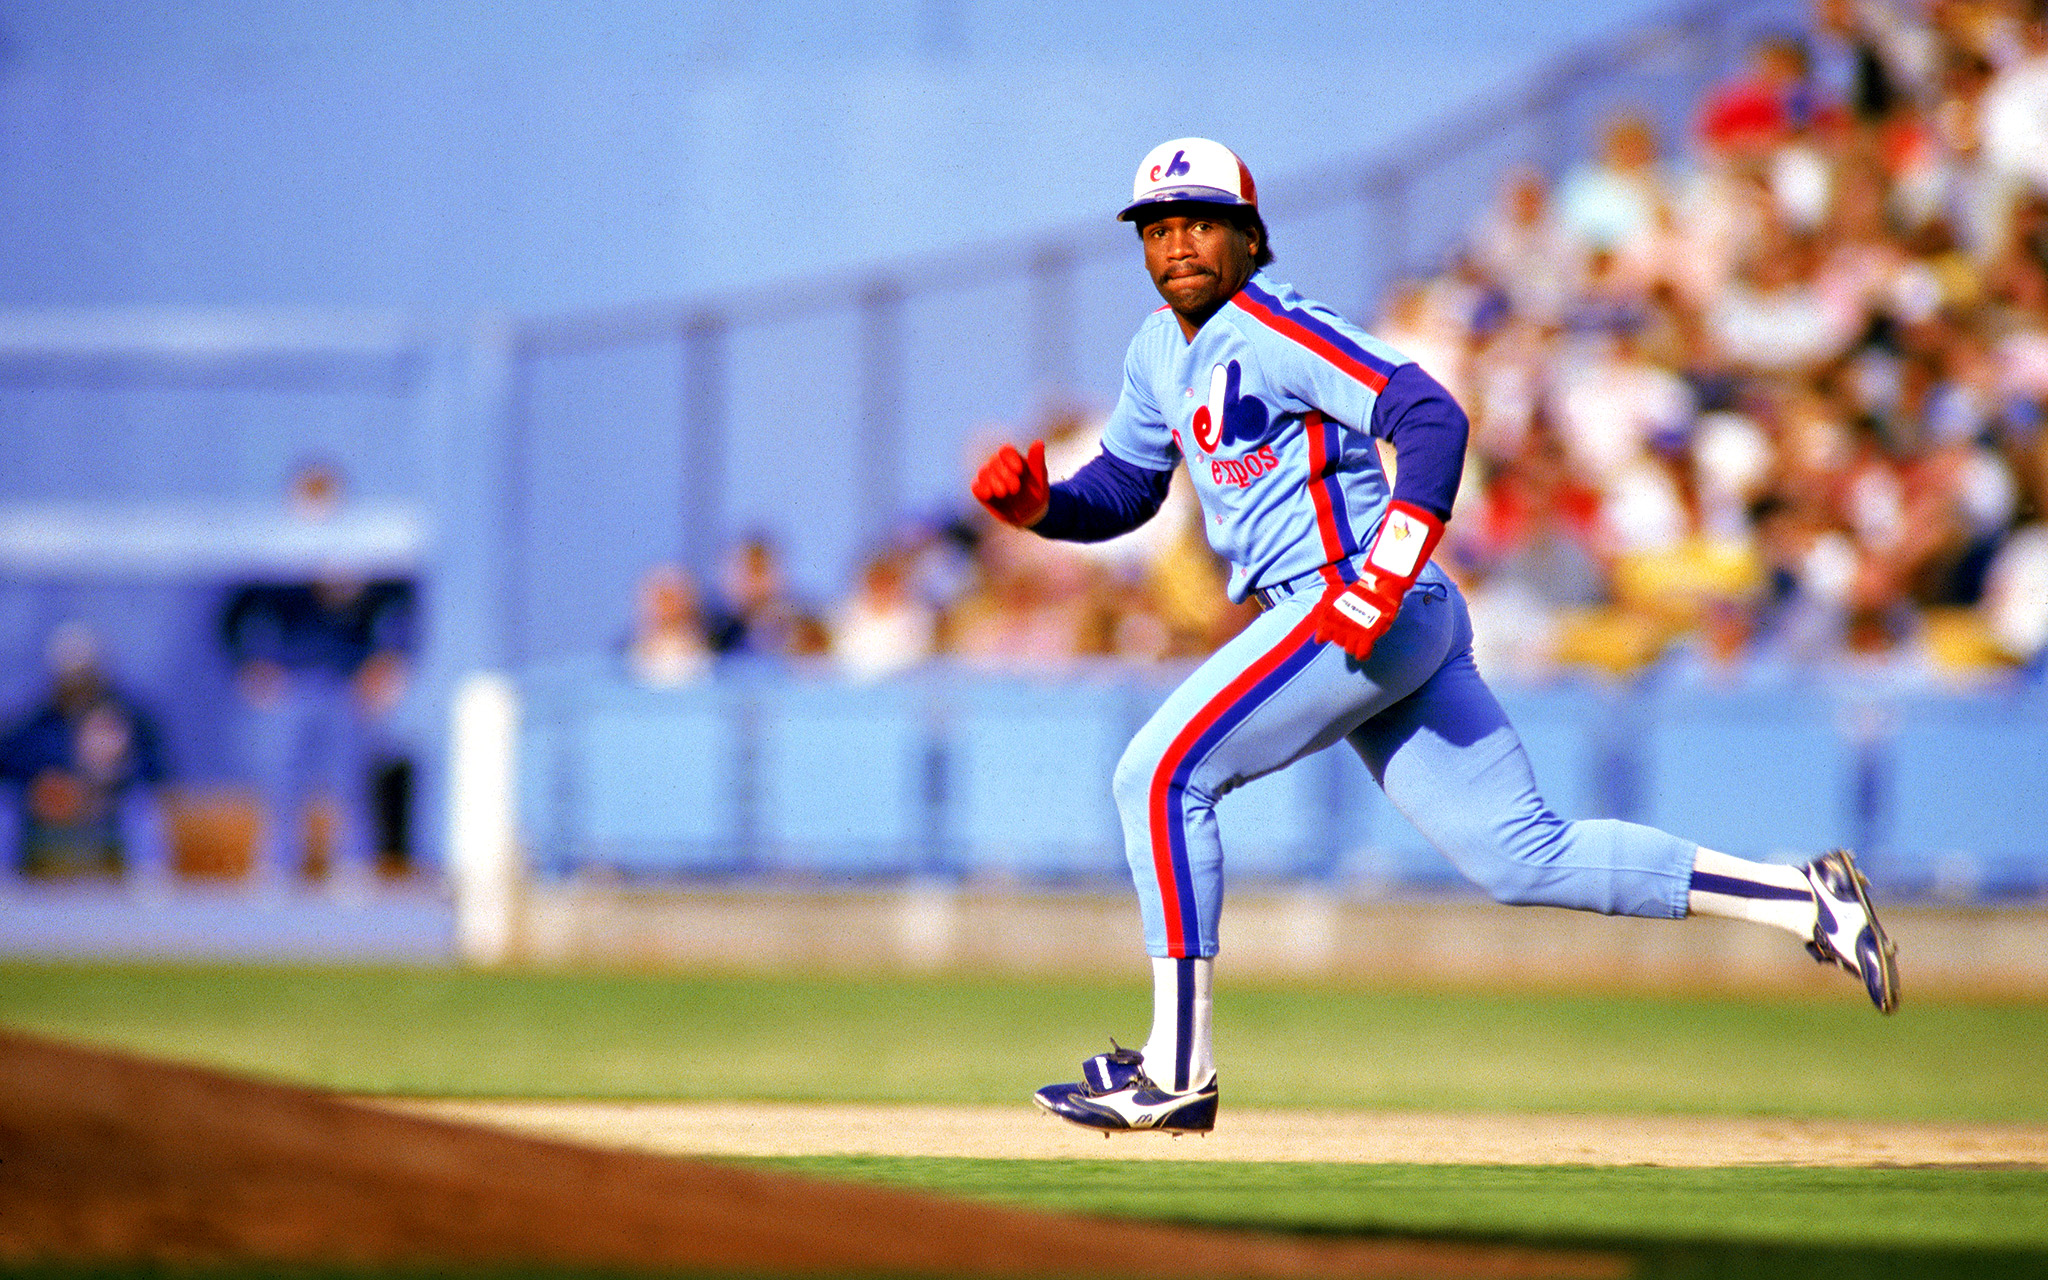 Expos: 1980s road jerseys